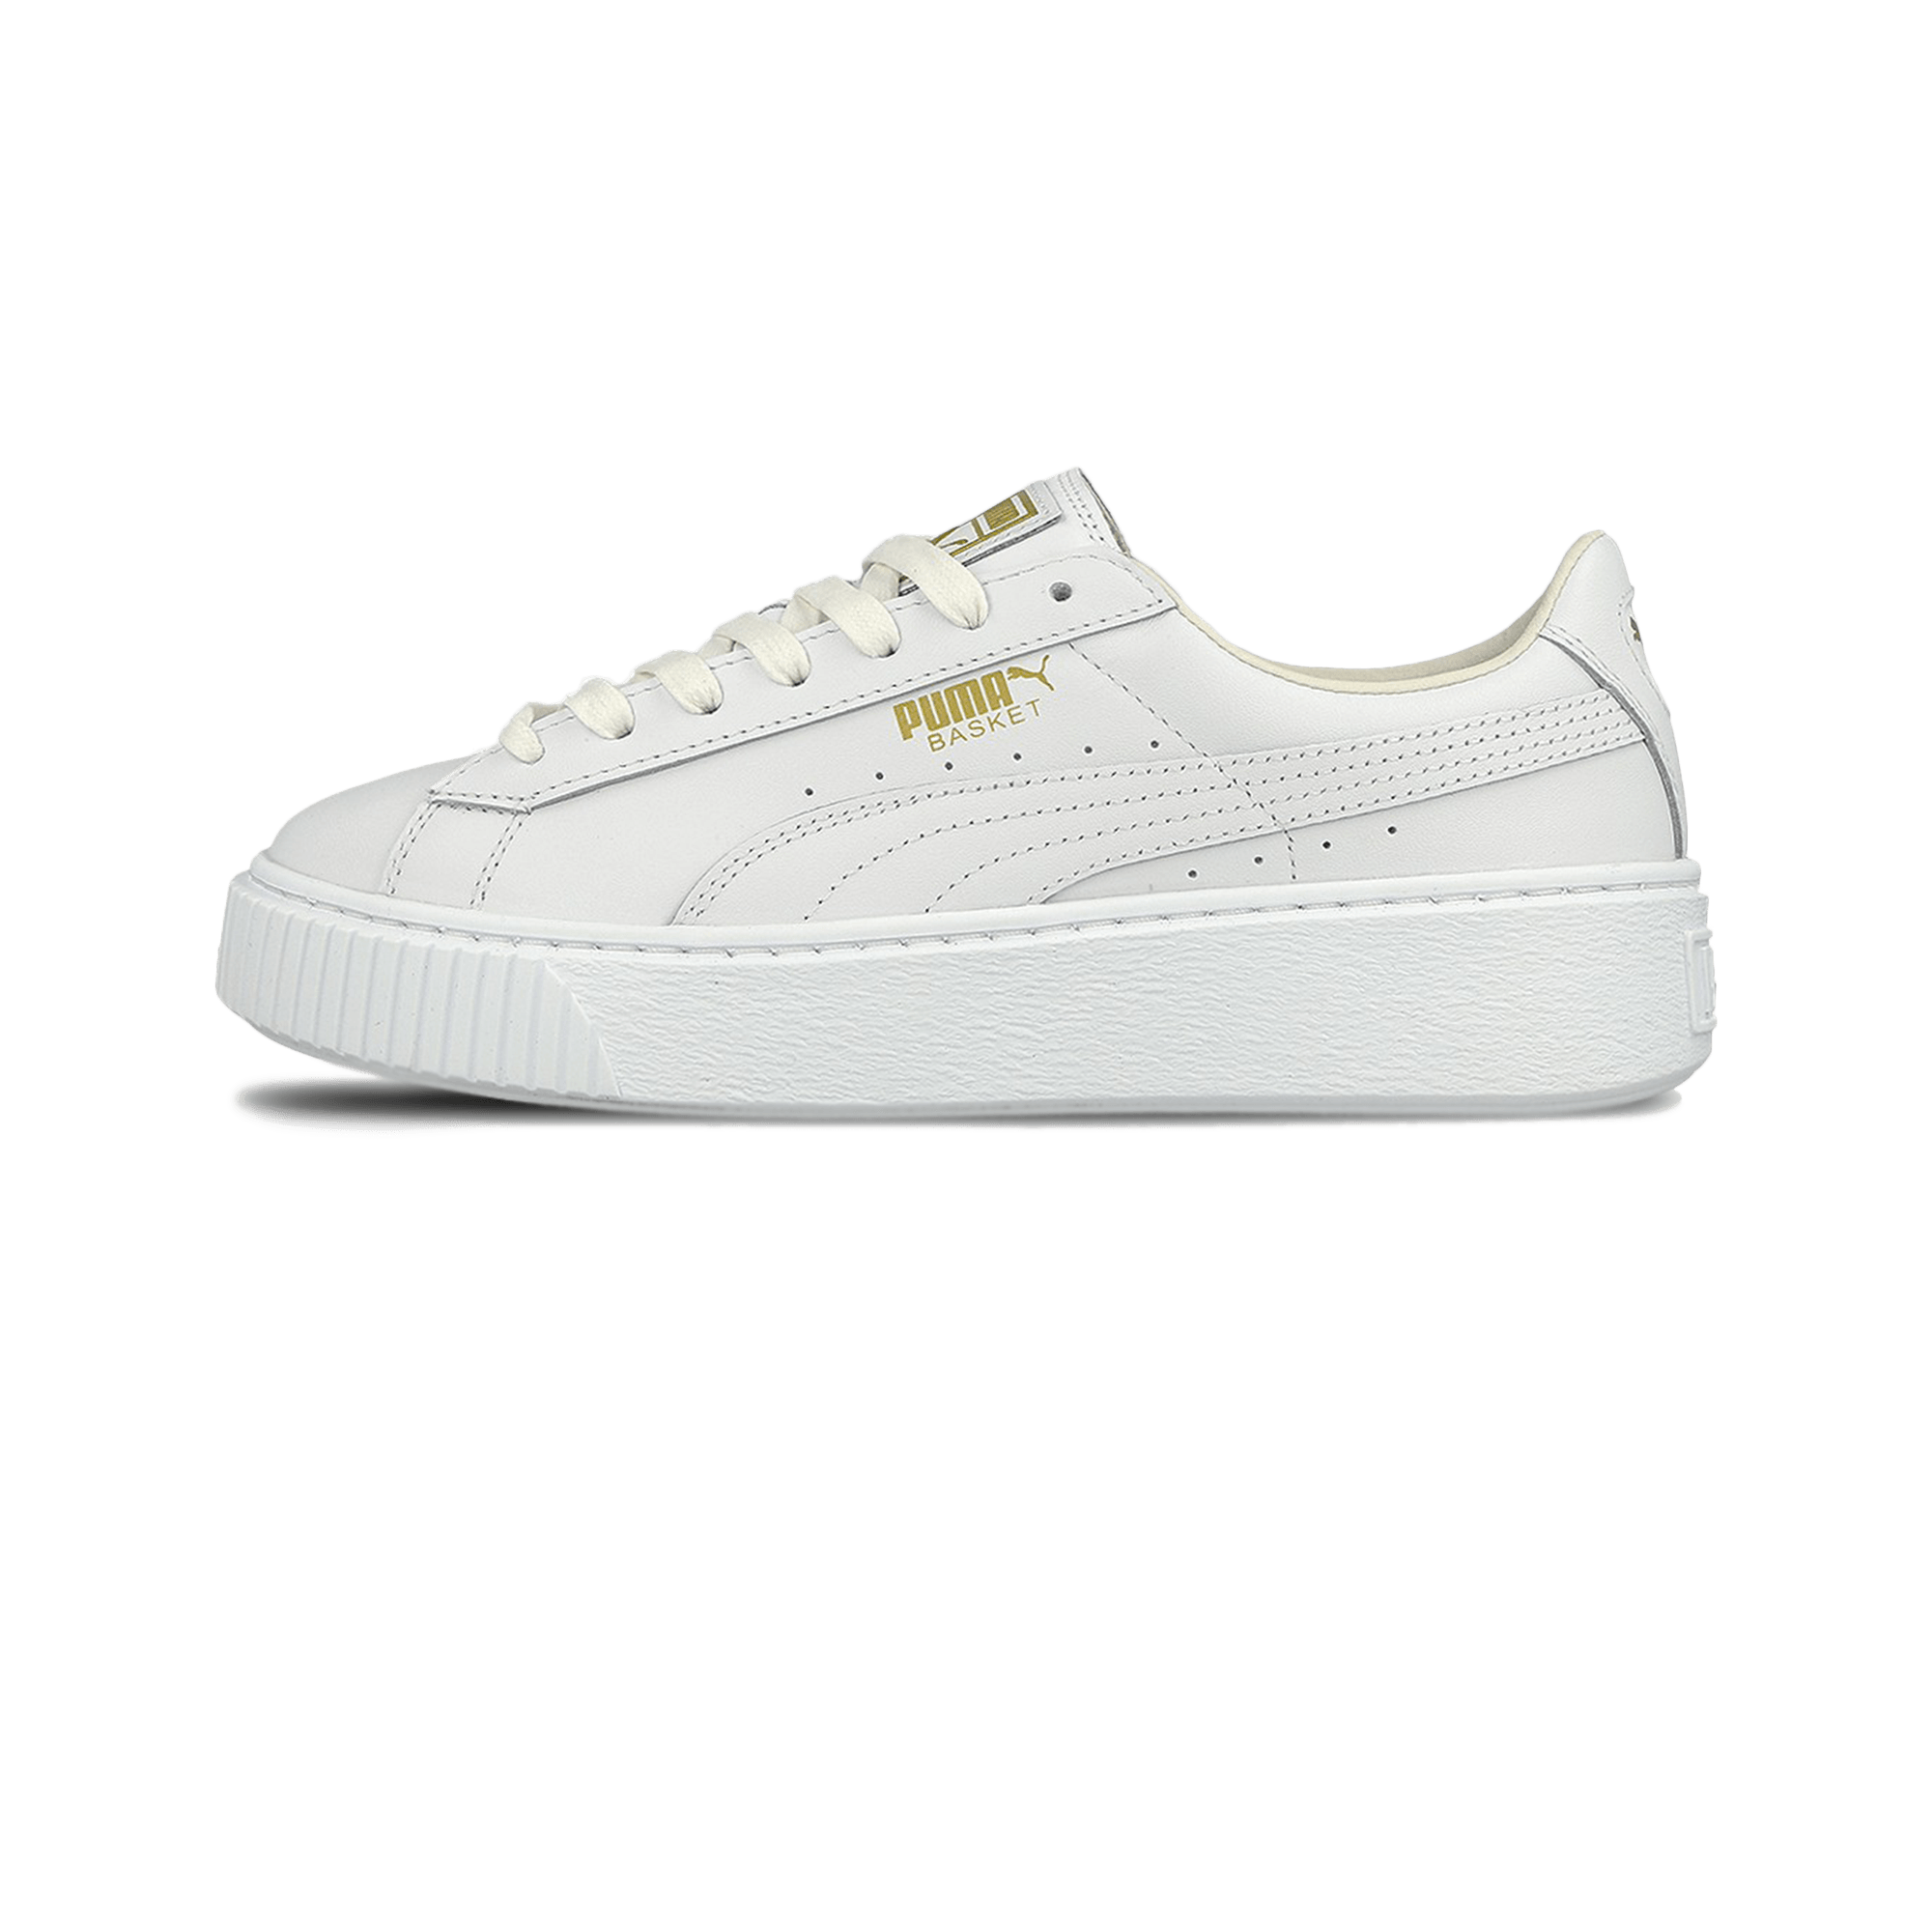 new products 8b5f7 06198 Puma Basket Platform Core white/gold - Woman | Holypopstore.com